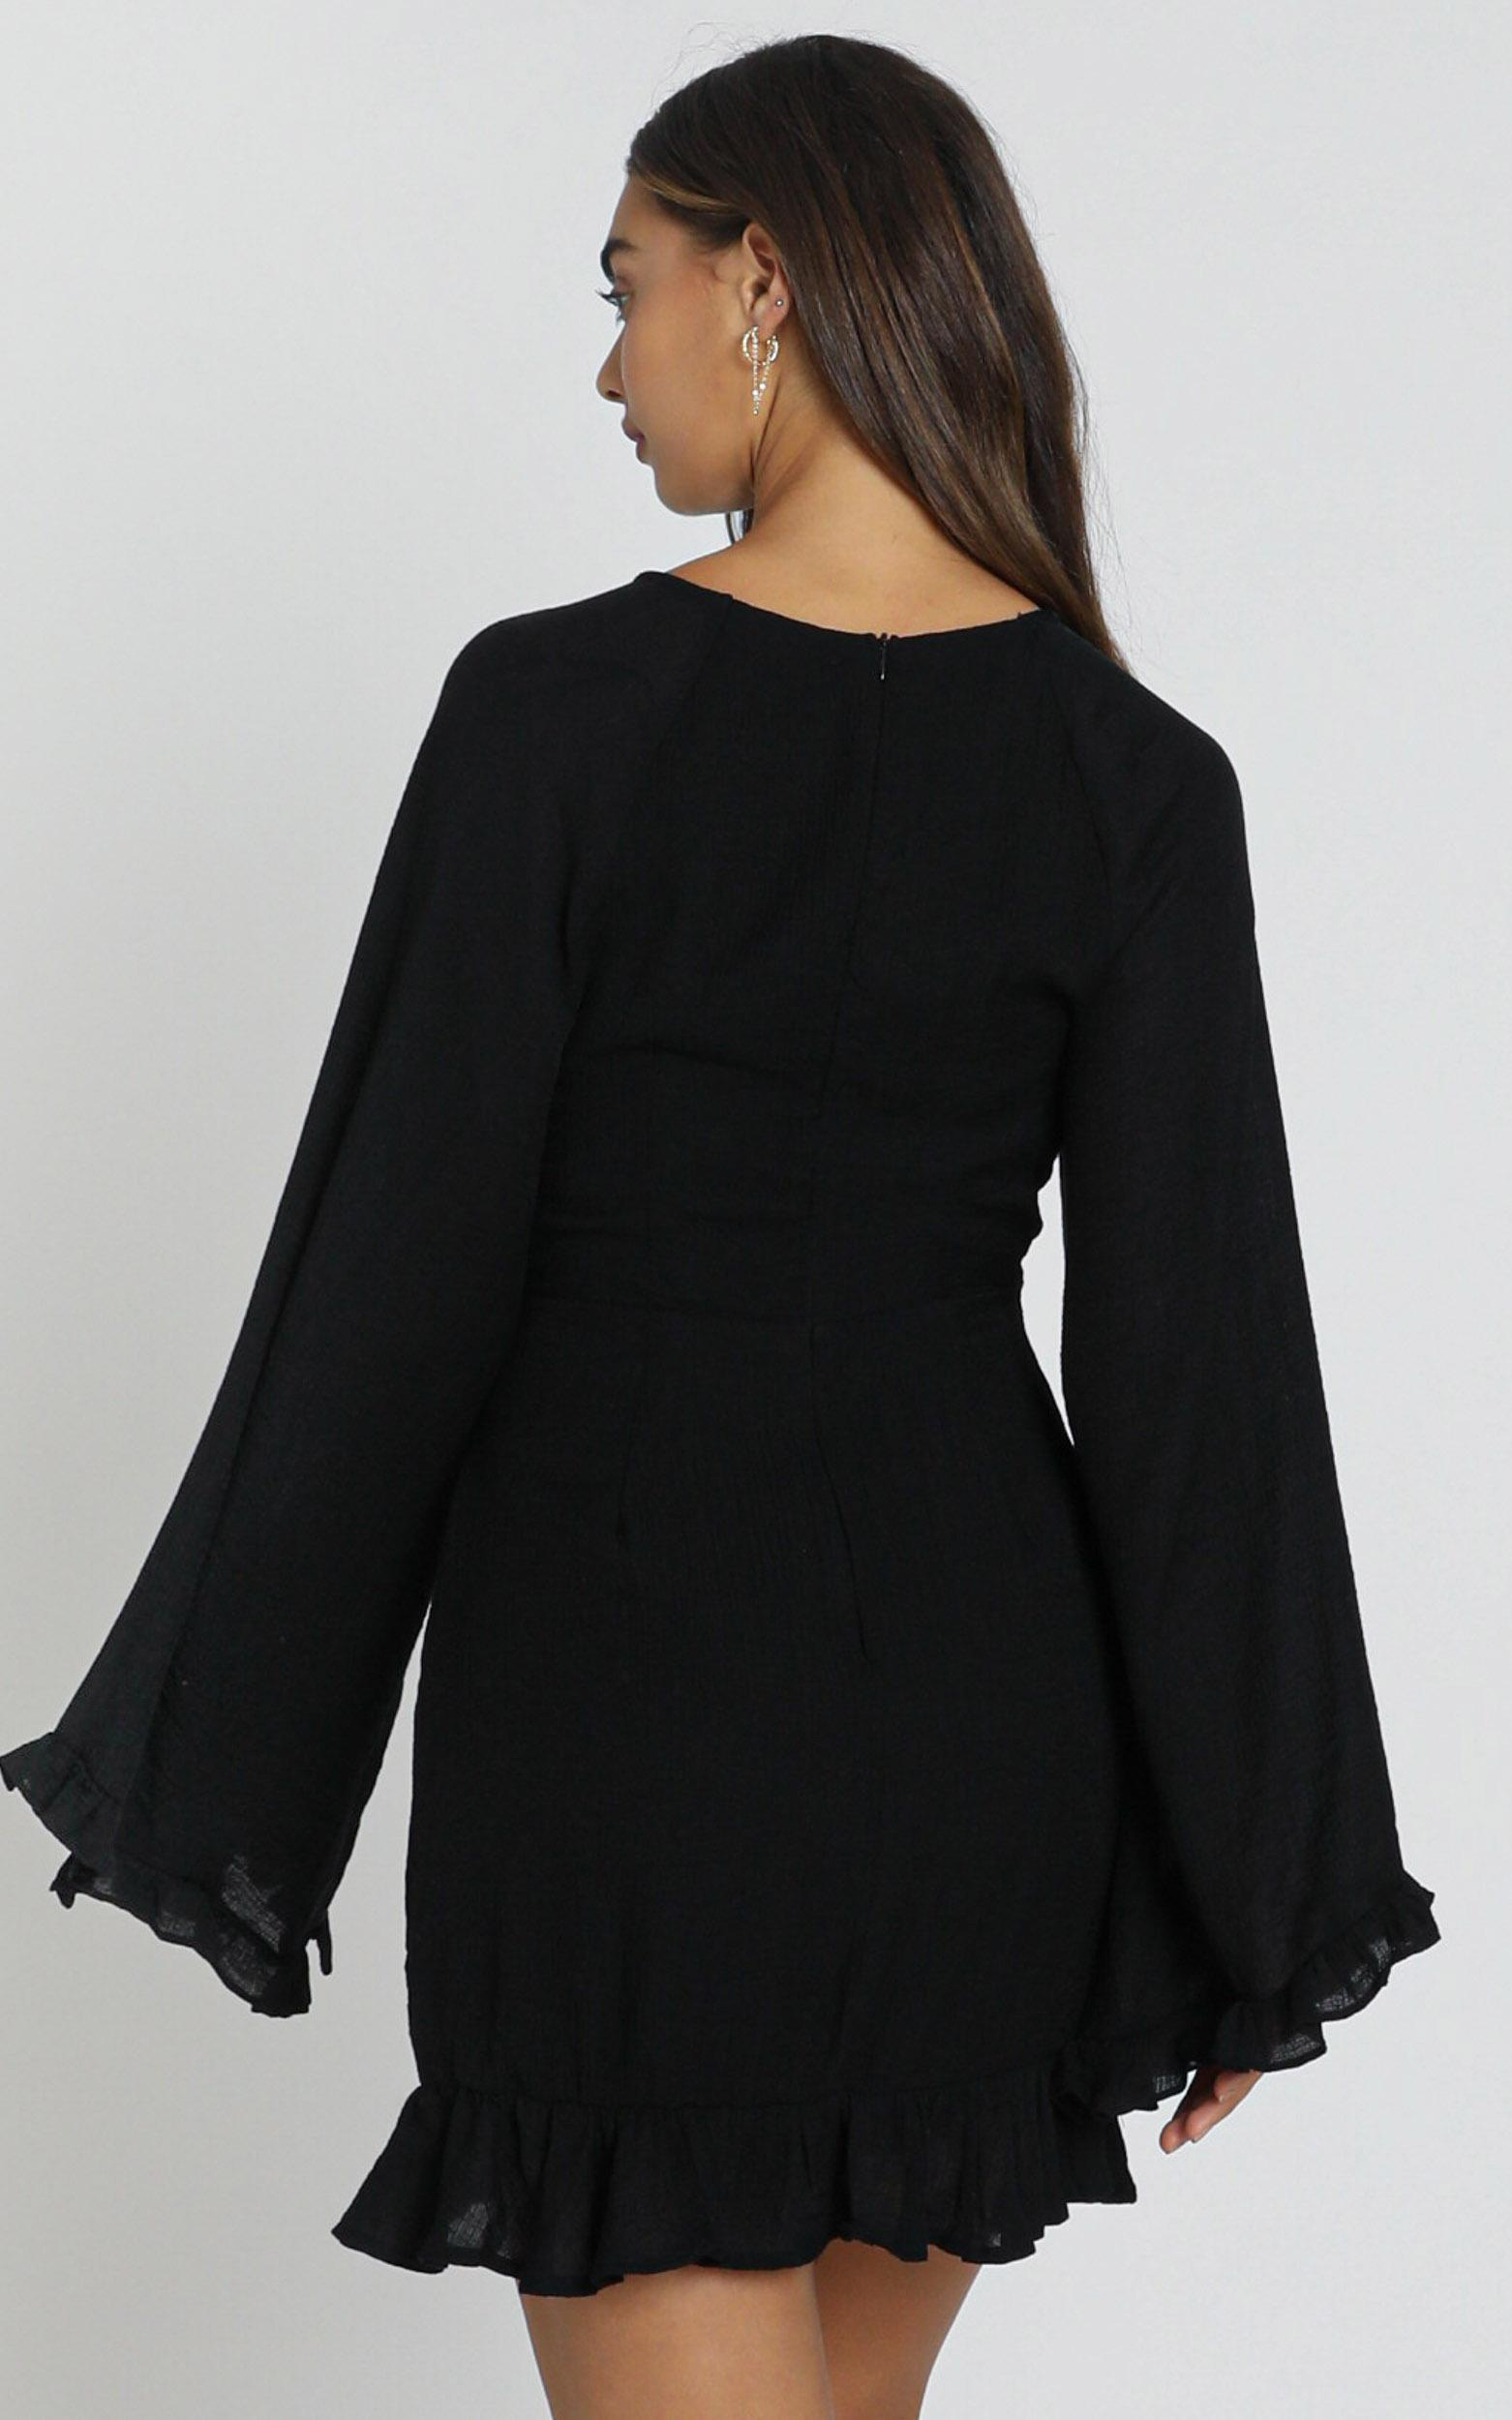 Ophelia Tie Front Dress in black - 6 (XS), Black, hi-res image number null